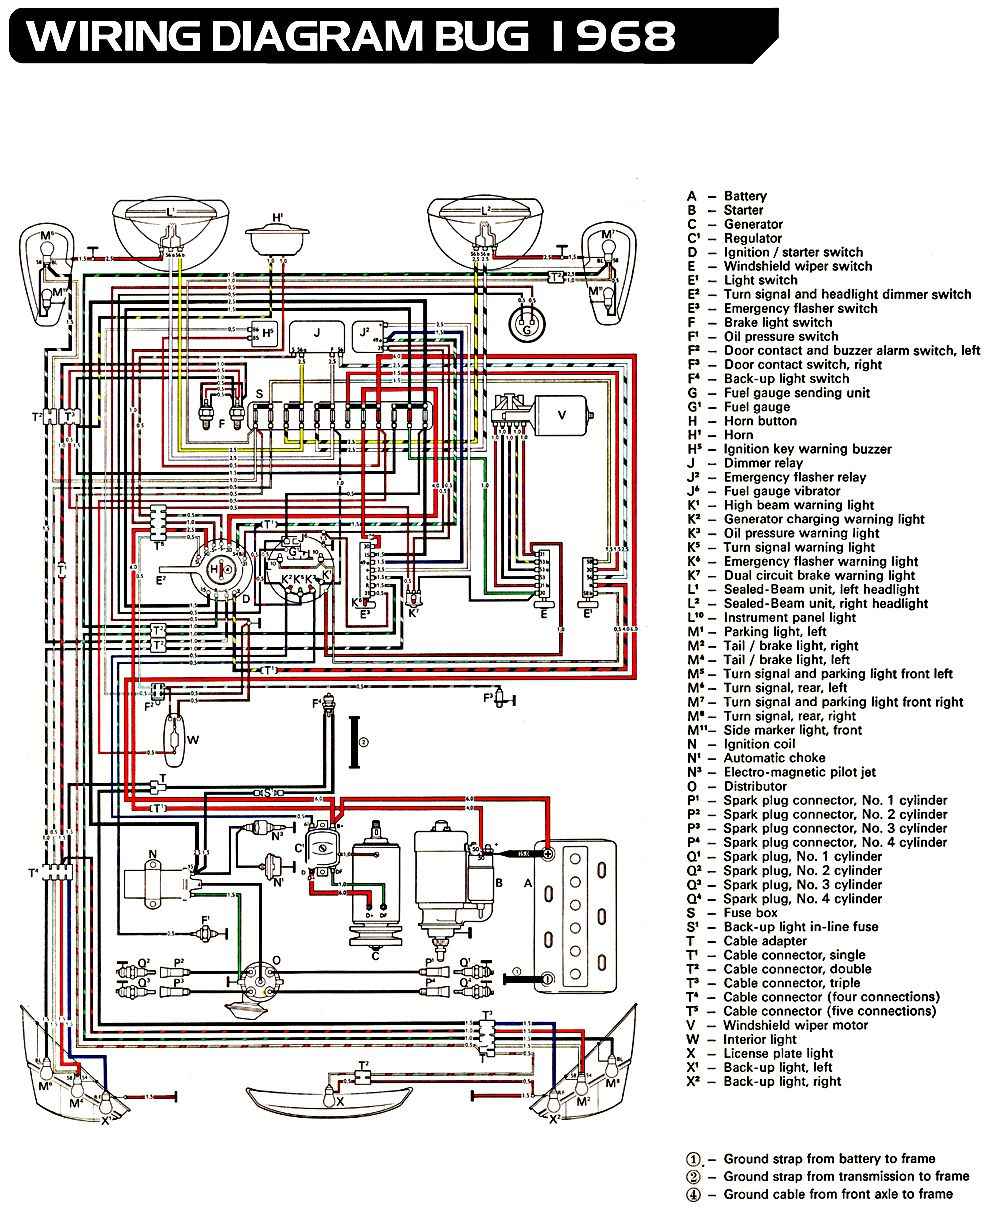 3a1908112d3826270ed5e3be362292bf vw bug ignition wiring diagram 73 vw wiring diagram free vw bug wiring diagram at soozxer.org